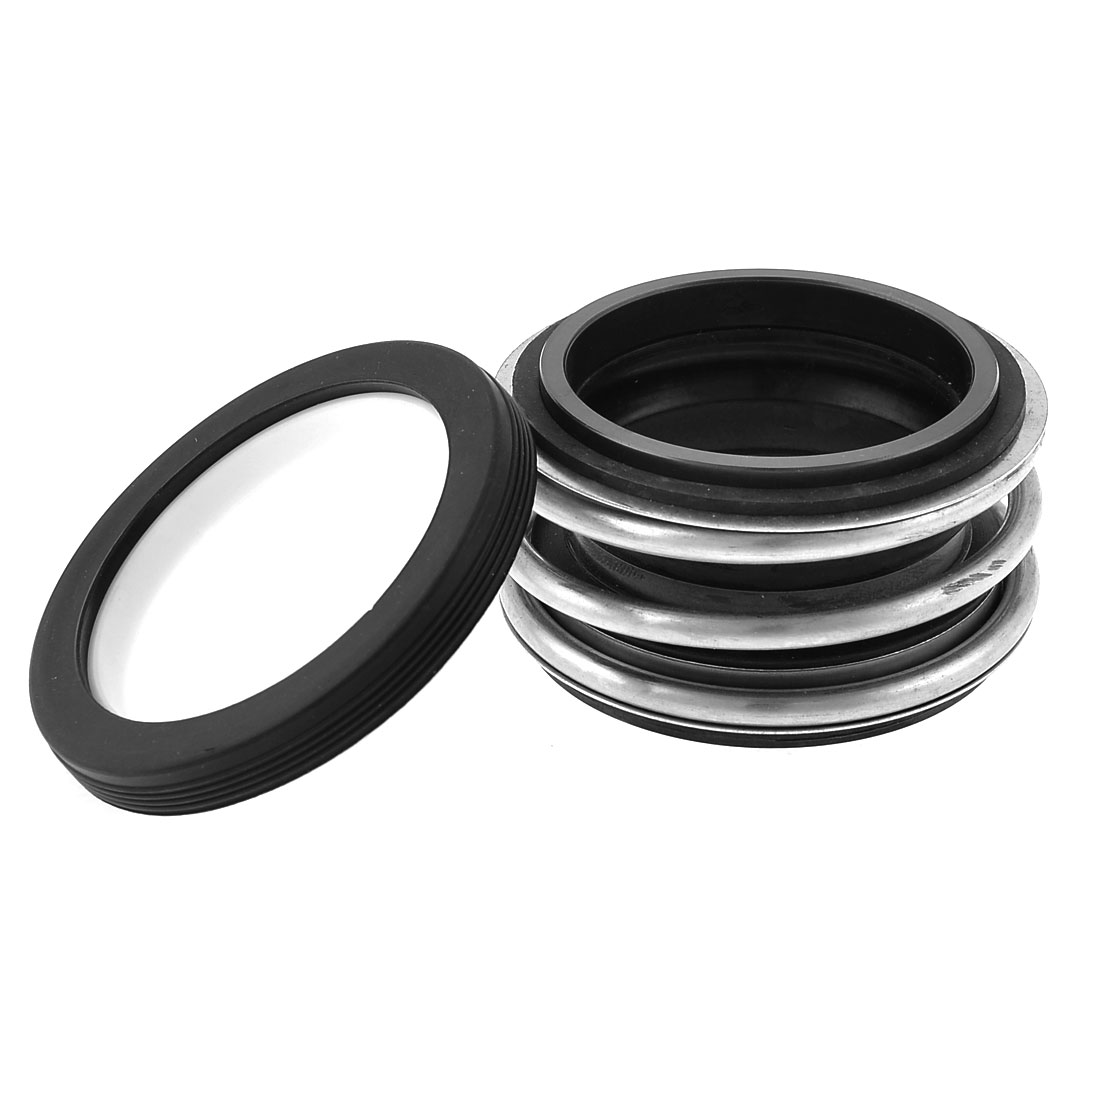 MB1-55 Ceramic Rotary Ring Rubber Bellows Pump Mechanical Seal 55mm